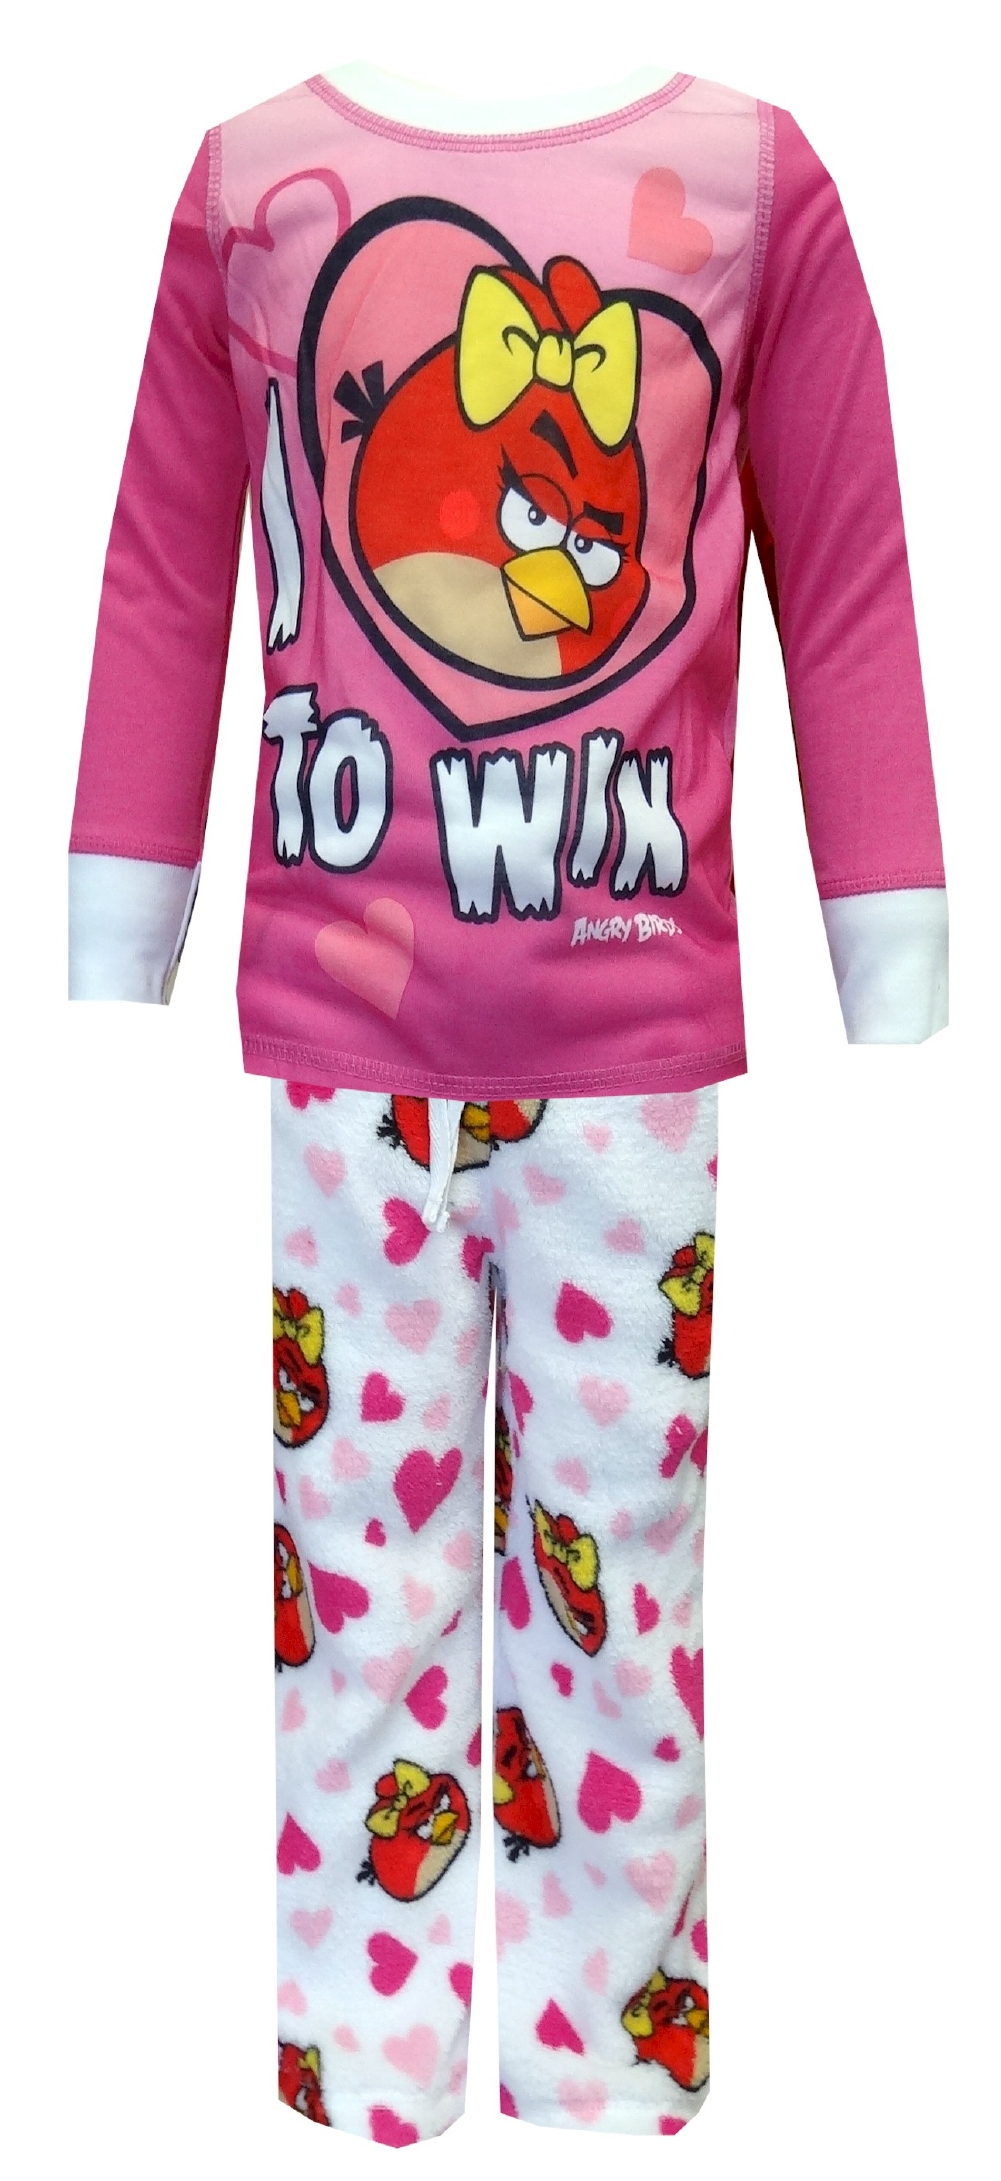 Angry Birds Pajamas for Girls - I Love To Win